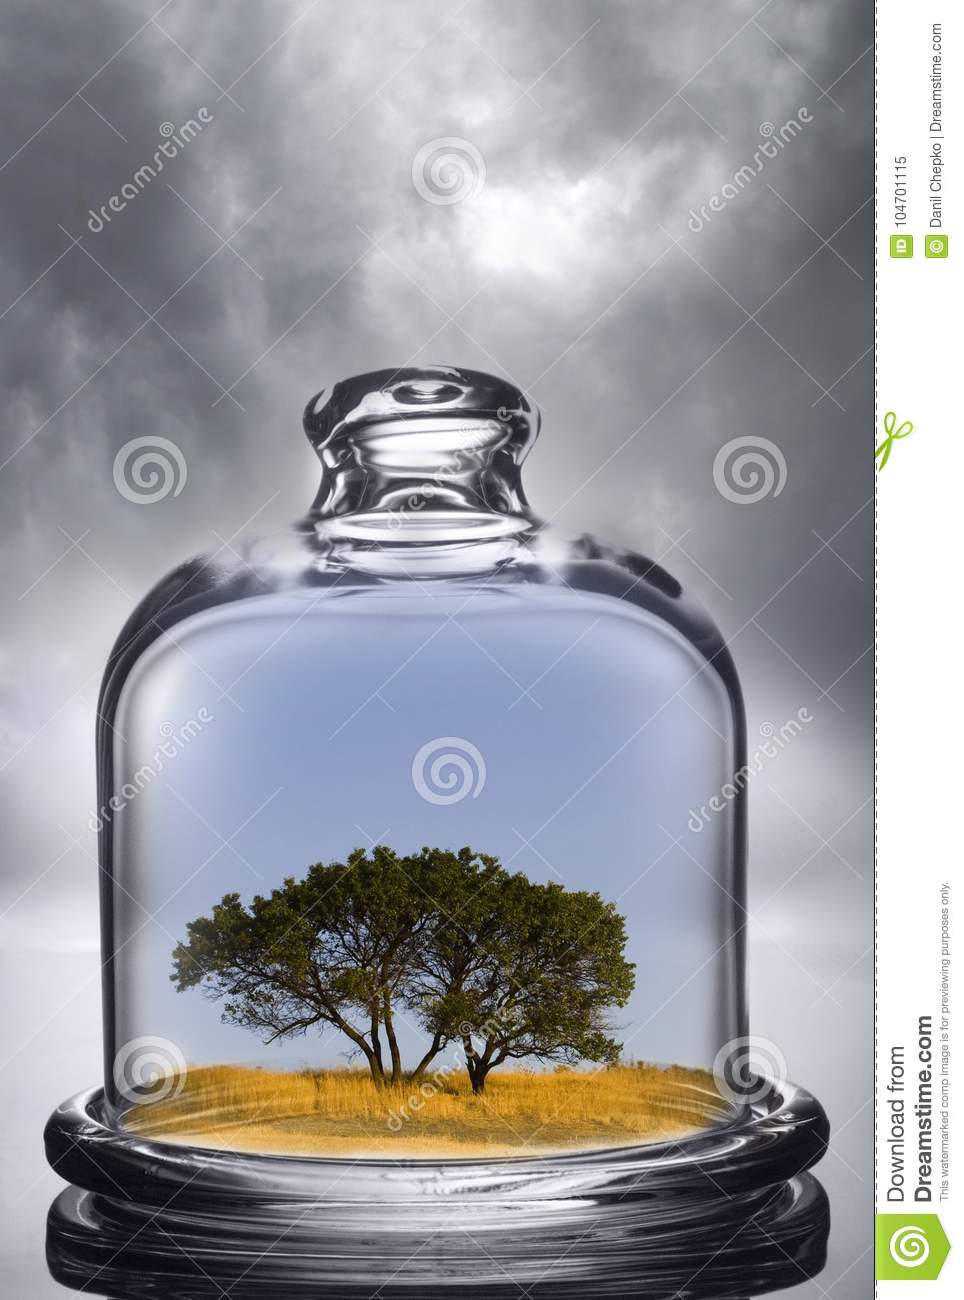 Tree growing under a glass dome on cloud background. Environment